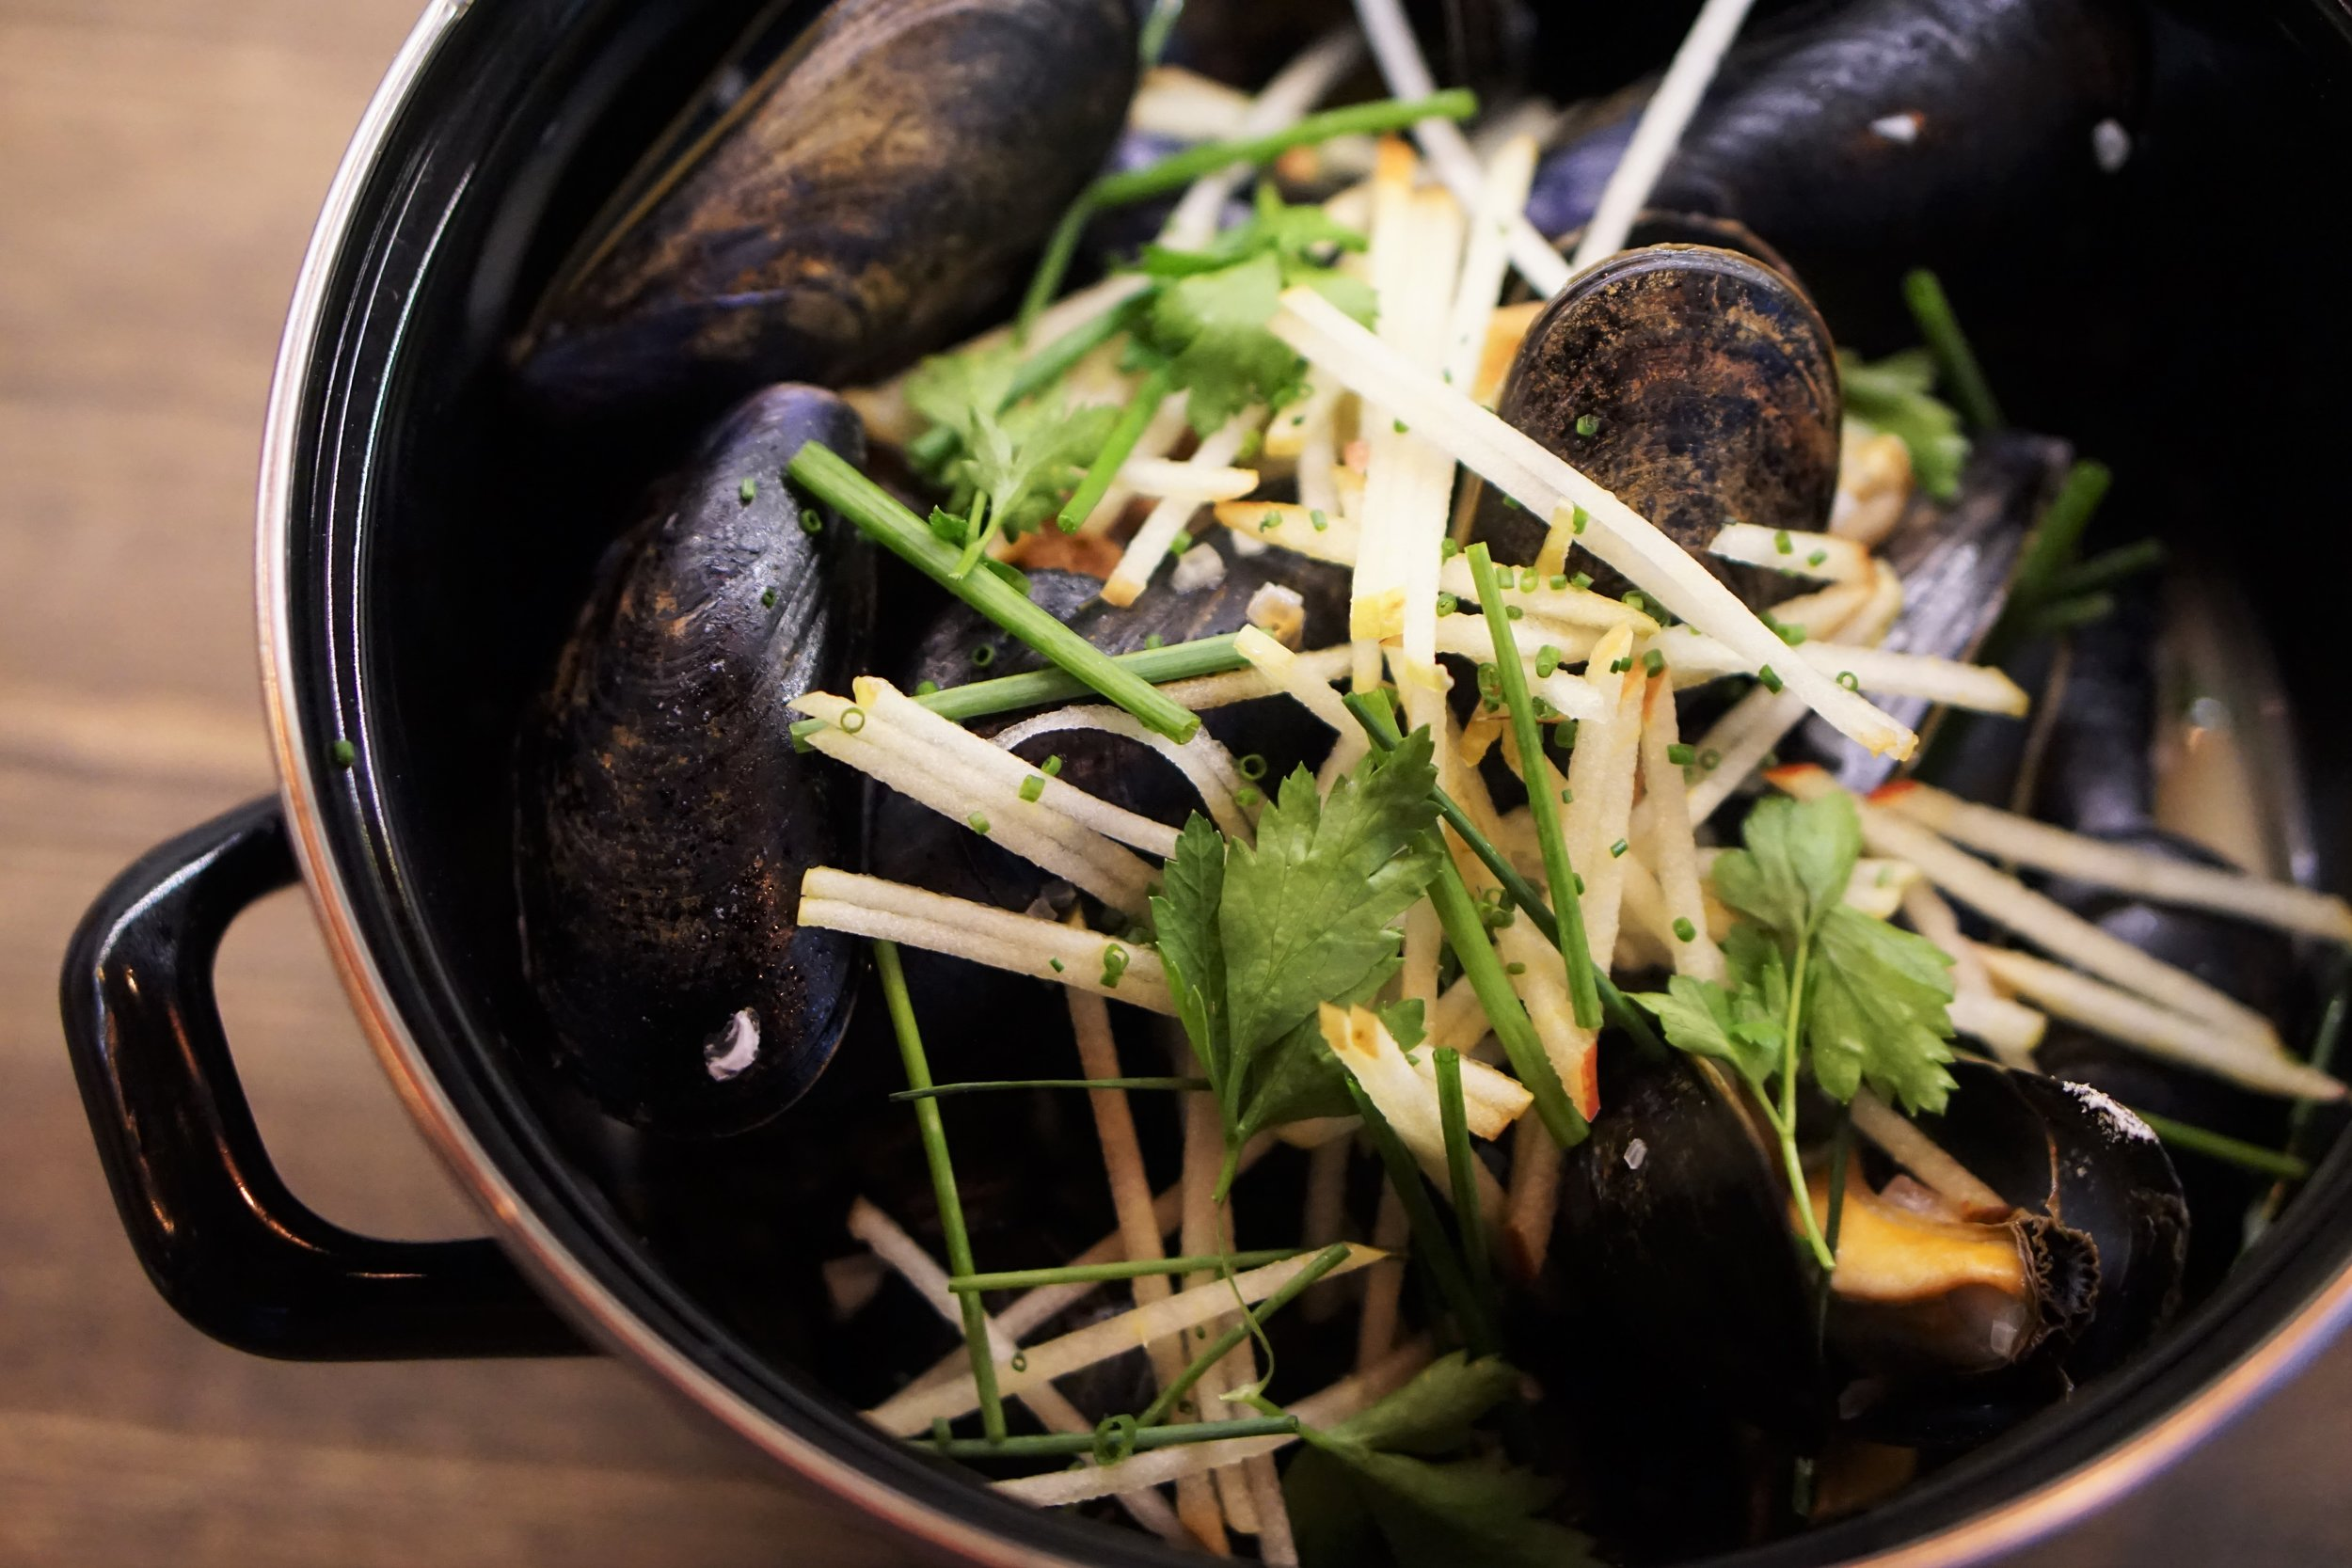 Cinder, Opening, Mussels